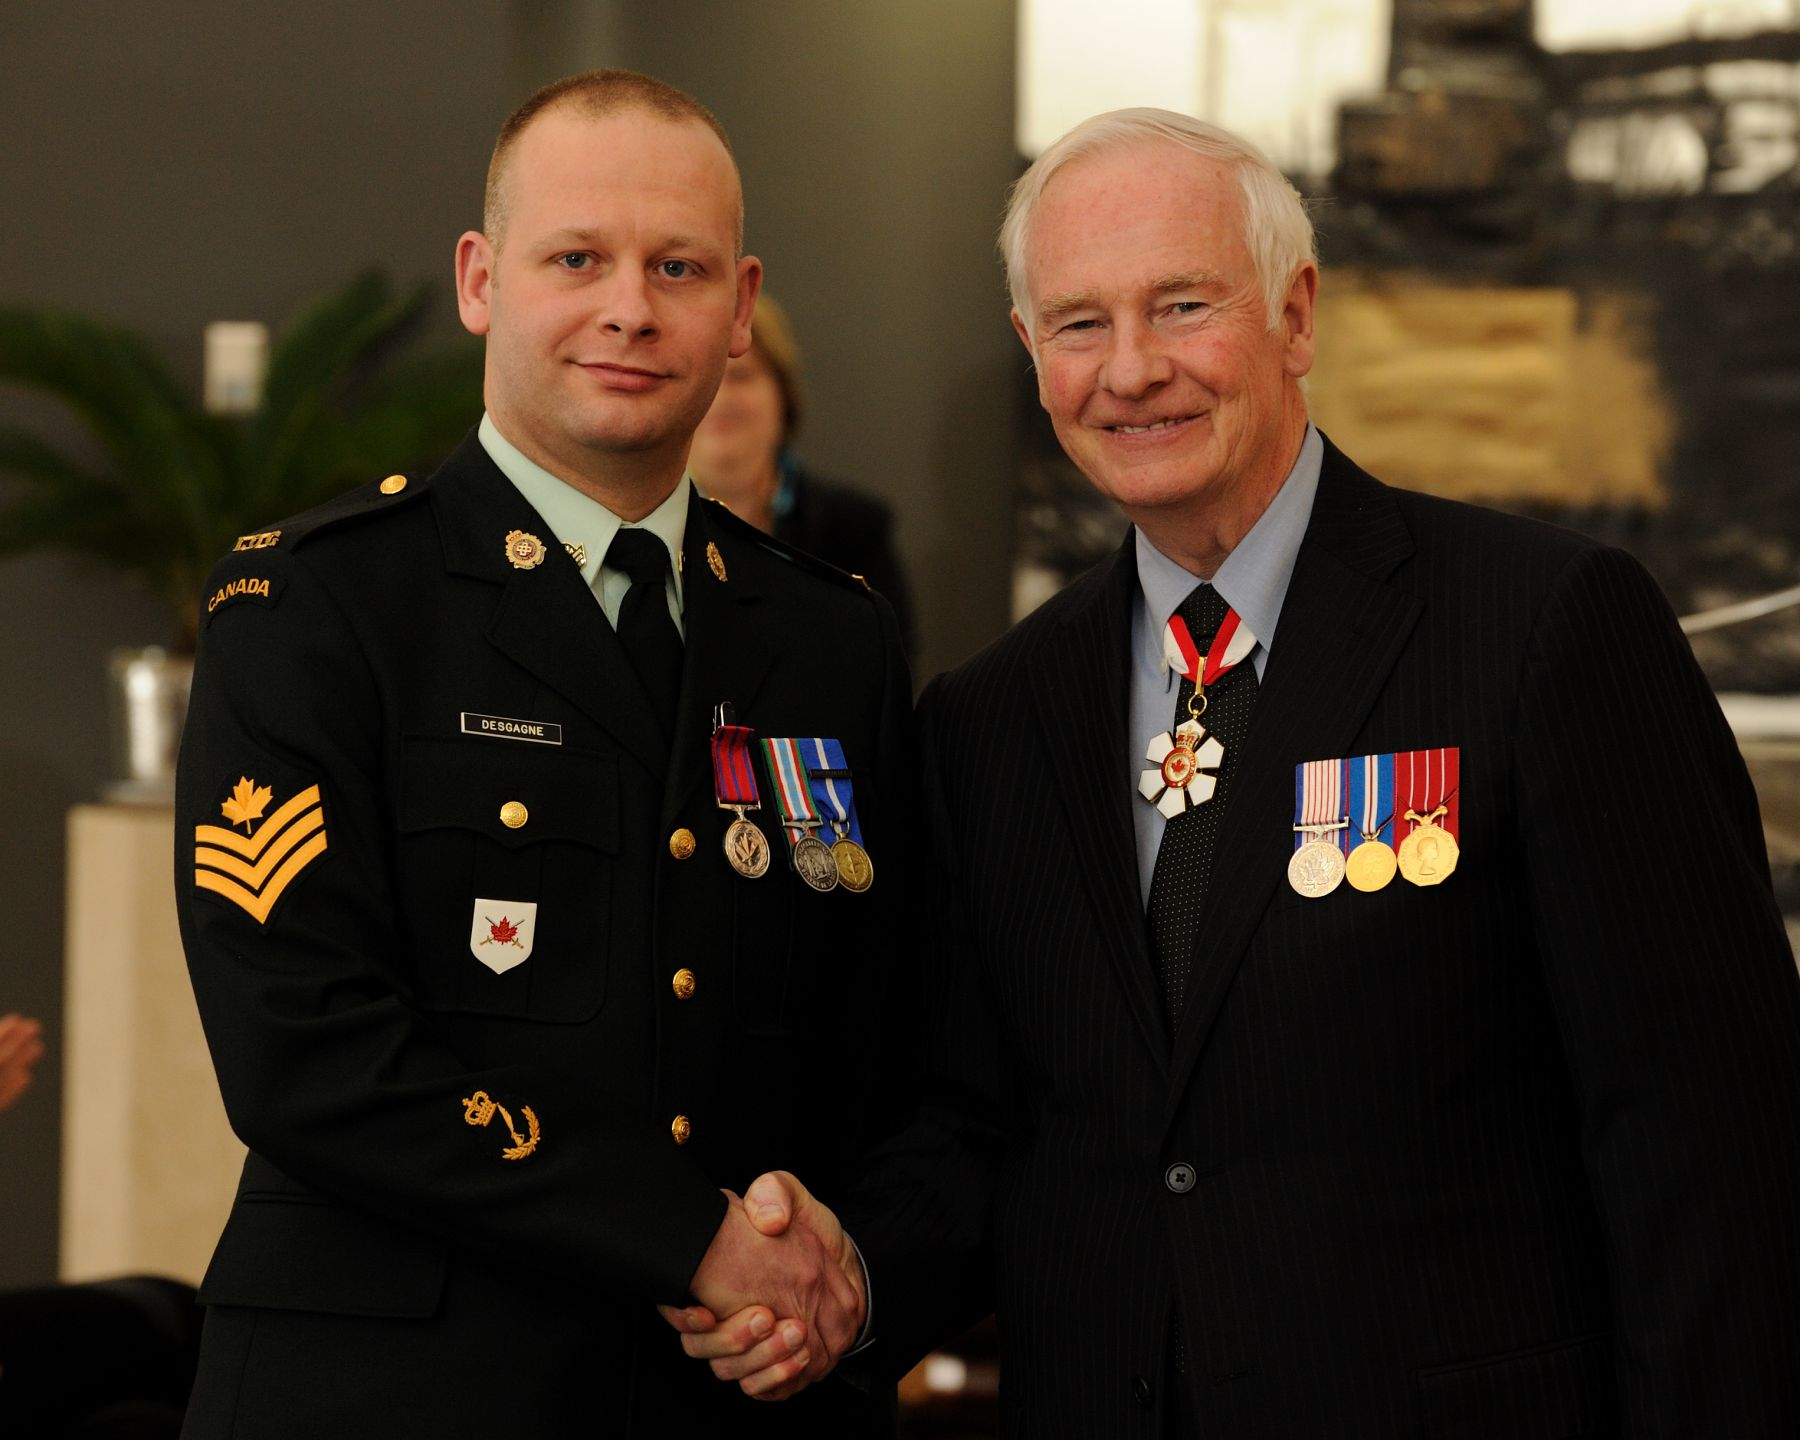 On August 16, 2008, Sergeant Steve Desgagné, M.B., an off-duty member of the Canadian Forces, prevented a man from committing an armed robbery and possibly harming a store clerk, at a convenience store in Montréal. The man had approached the clerk, held up a knife, and told him that this was a holdup. When Sergeant Desgagné noticed the robbery in progress, he put his hand in his pocket and pretended that he had a gun. Approaching the individual, Sergeant Desgagné ordered him to put down his knife. The robber dropped his weapon and started to flee. Sergeant Desgagné ran after the man, not knowing if he carried another weapon. After a brief struggle, the robber was subdued and held until the police arrived.